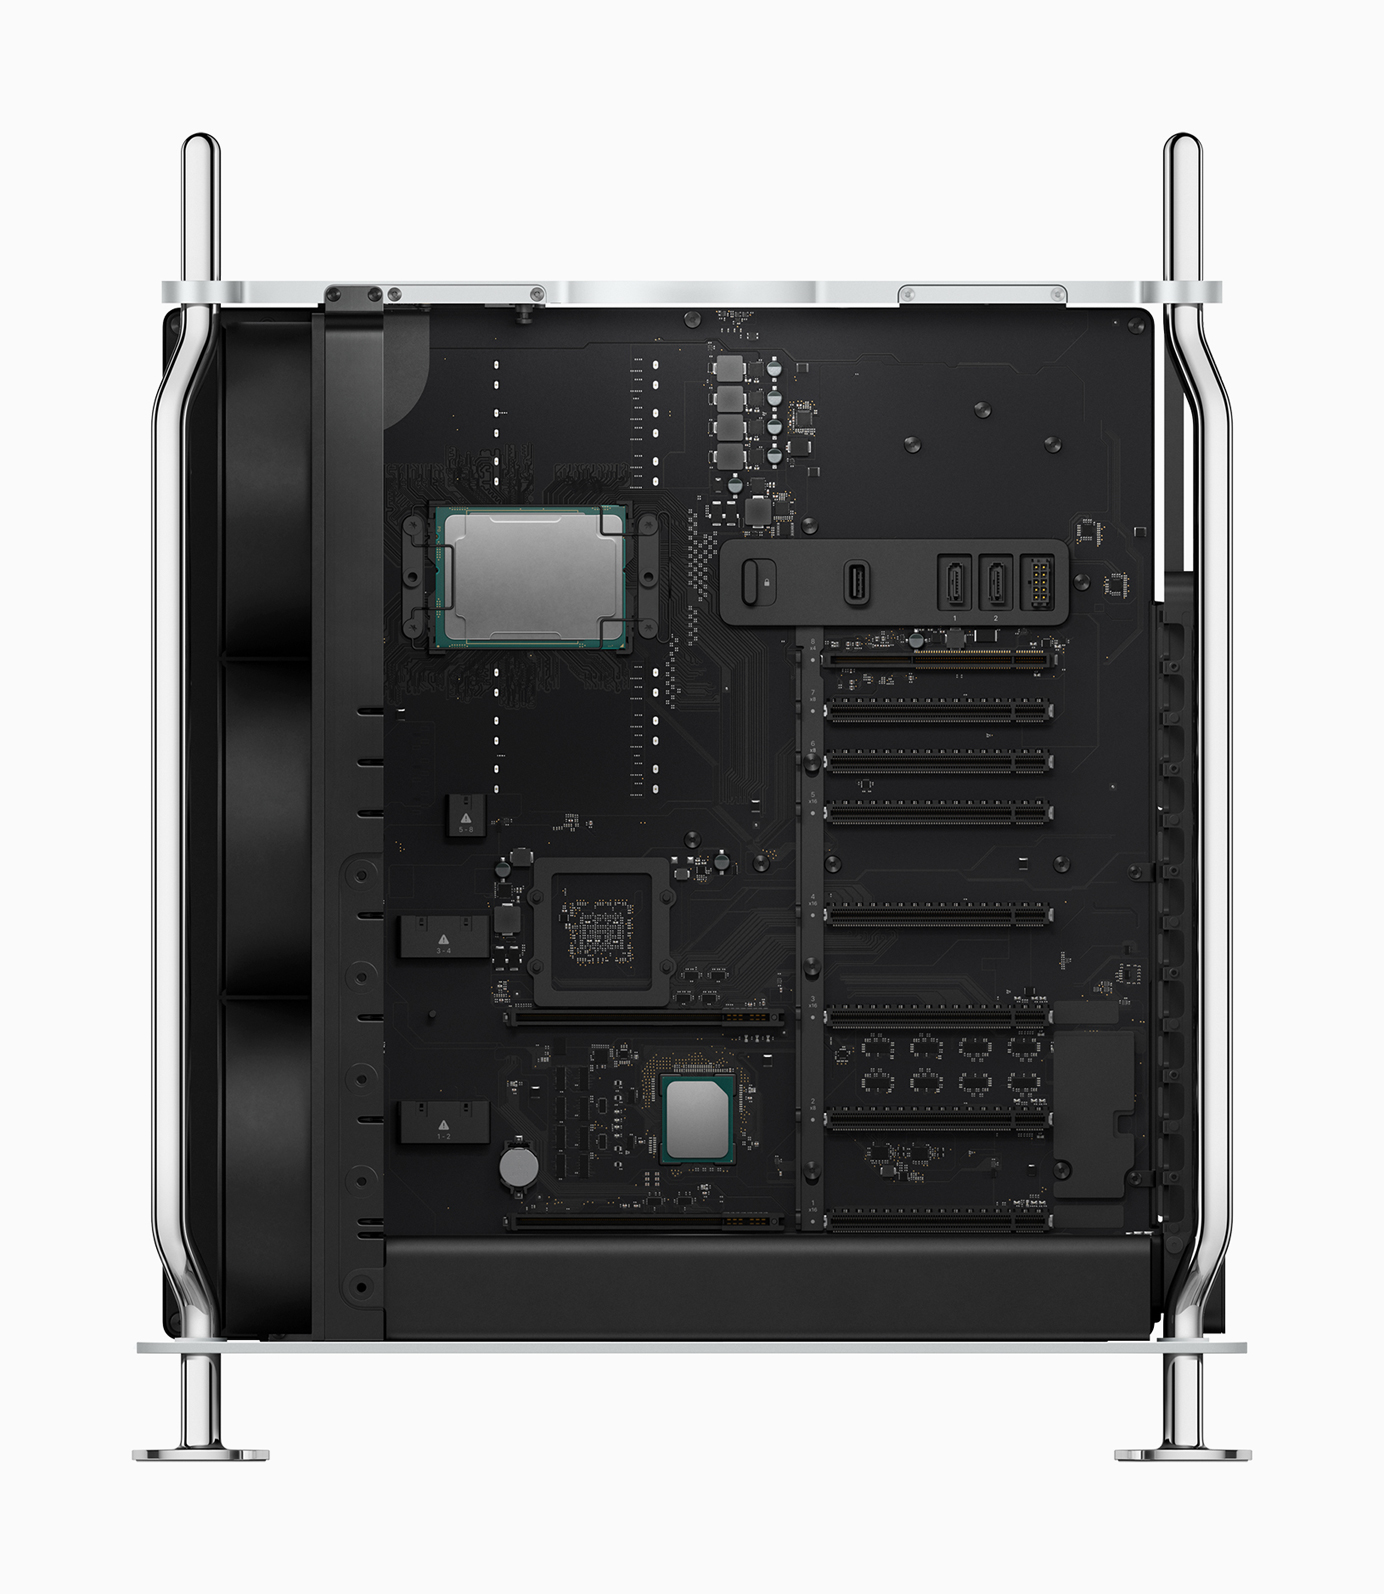 Mac Pro features powerful Xeon processors up to 28 cores